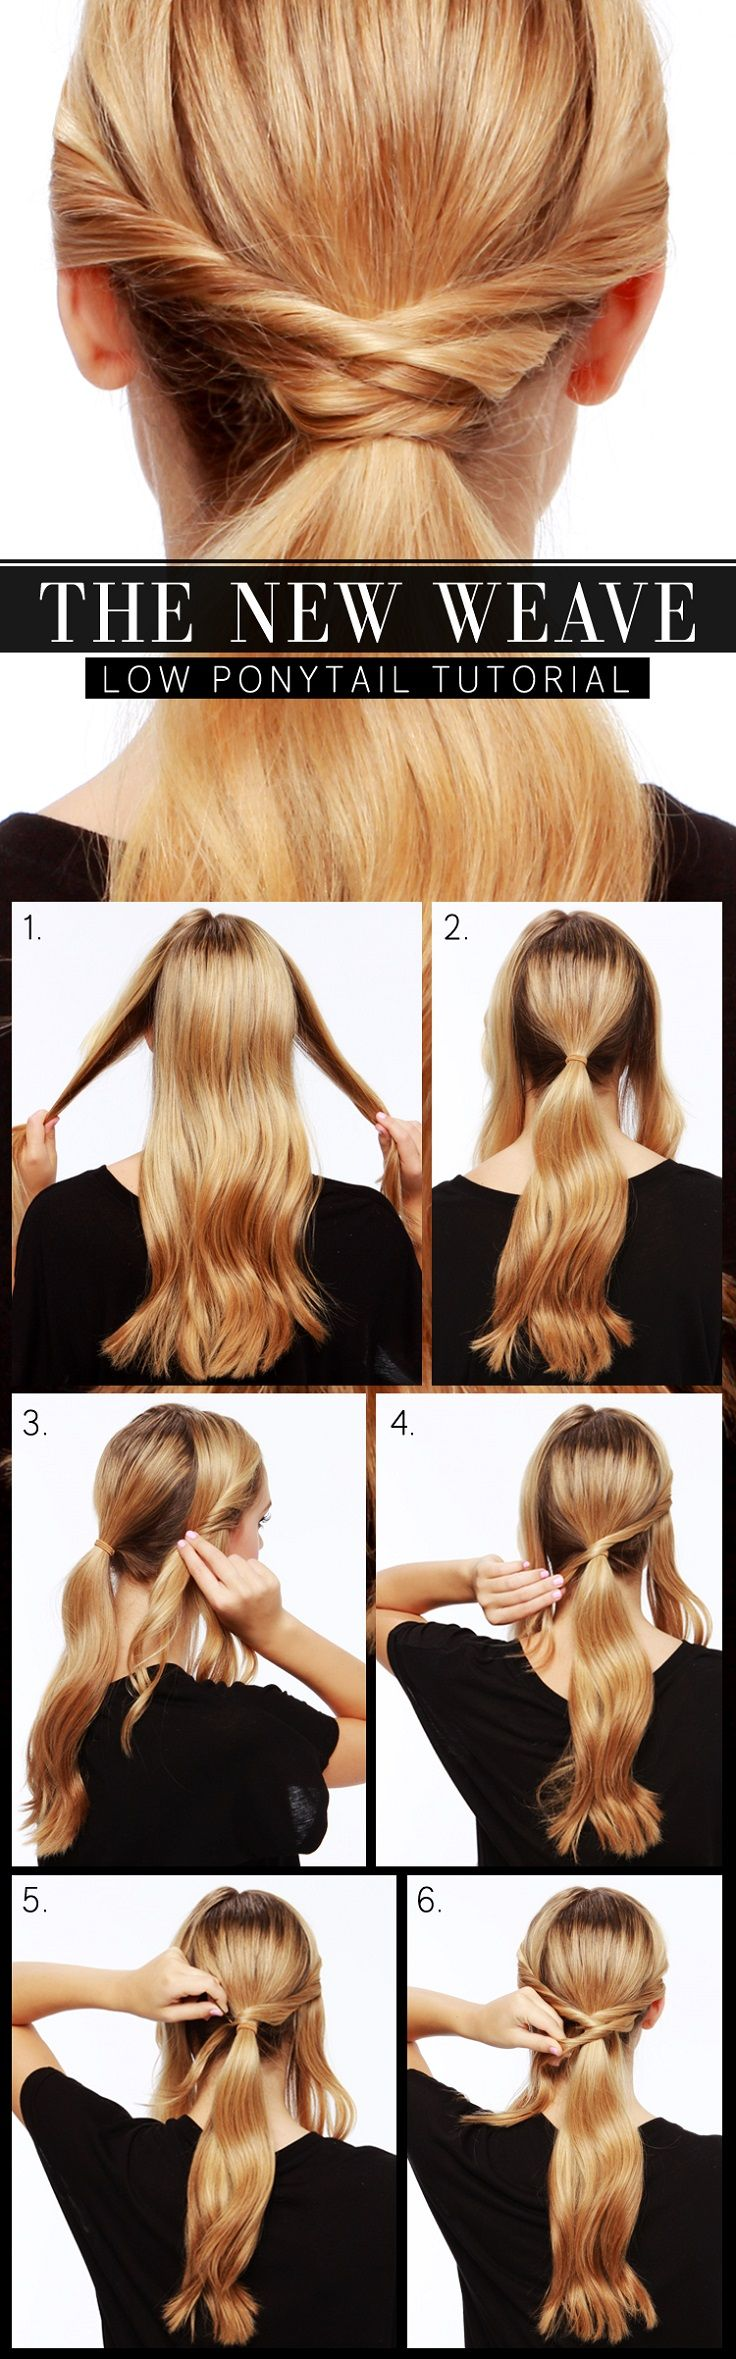 Surprising 10 Quick And Easy Ideas How To Make An Pretty Hairstyle Pretty Short Hairstyles For Black Women Fulllsitofus